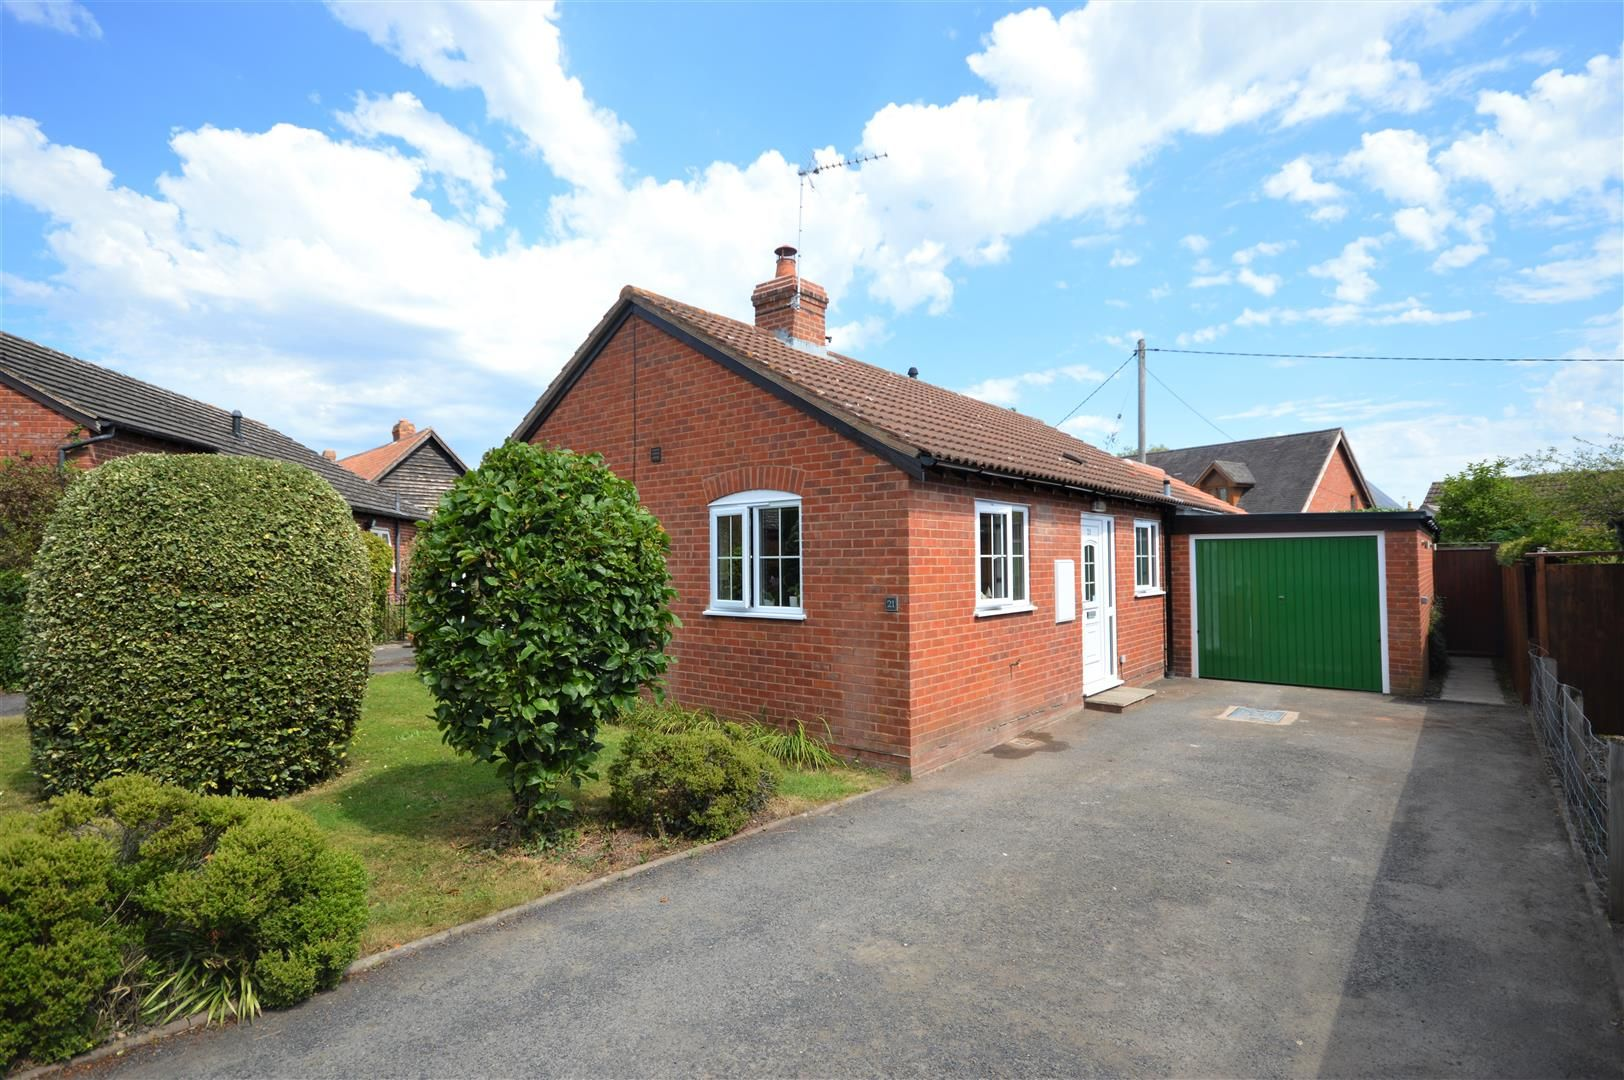 2 bed detached-bungalow for sale in Luston, HR6